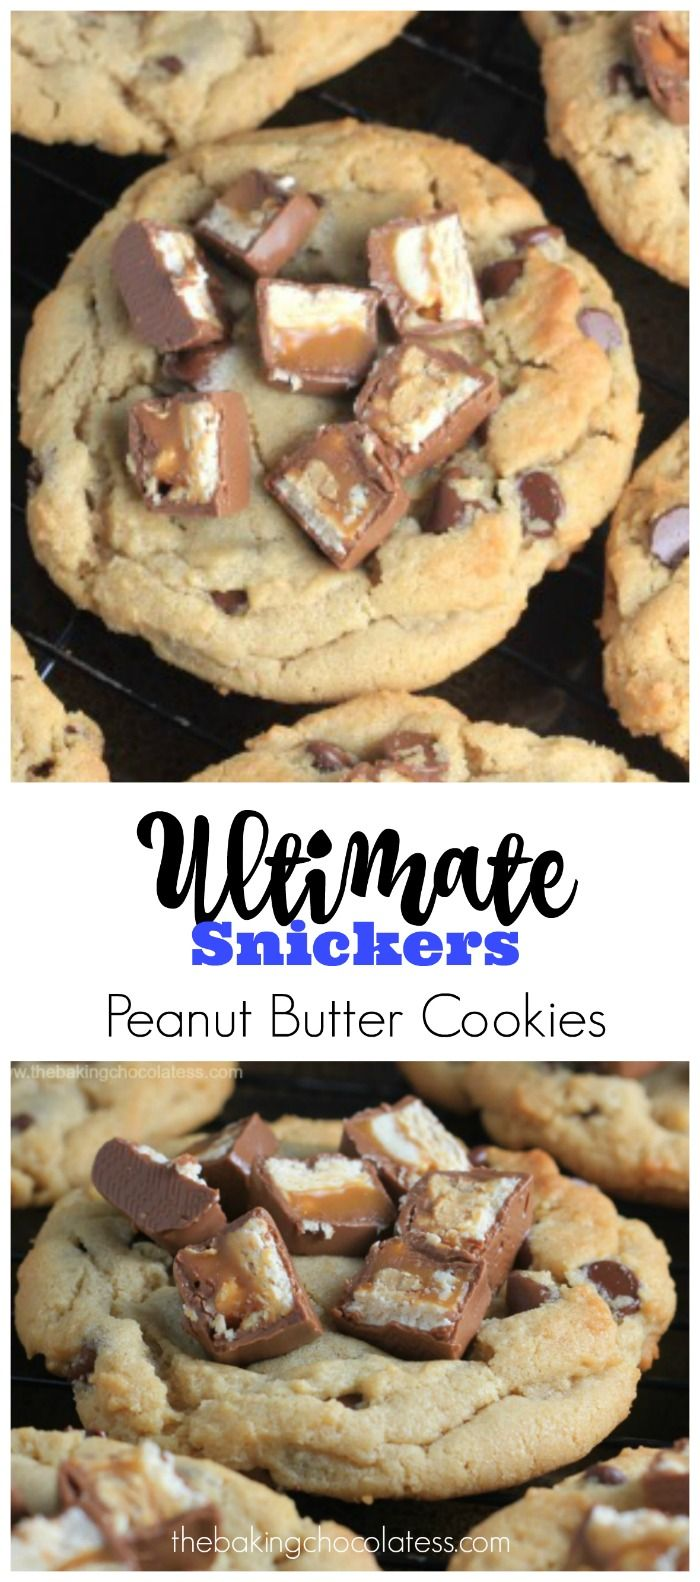 Ultimate Snickers Peanut Butter Cookies via @https://www.pinterest.com/BaknChocolaTess/